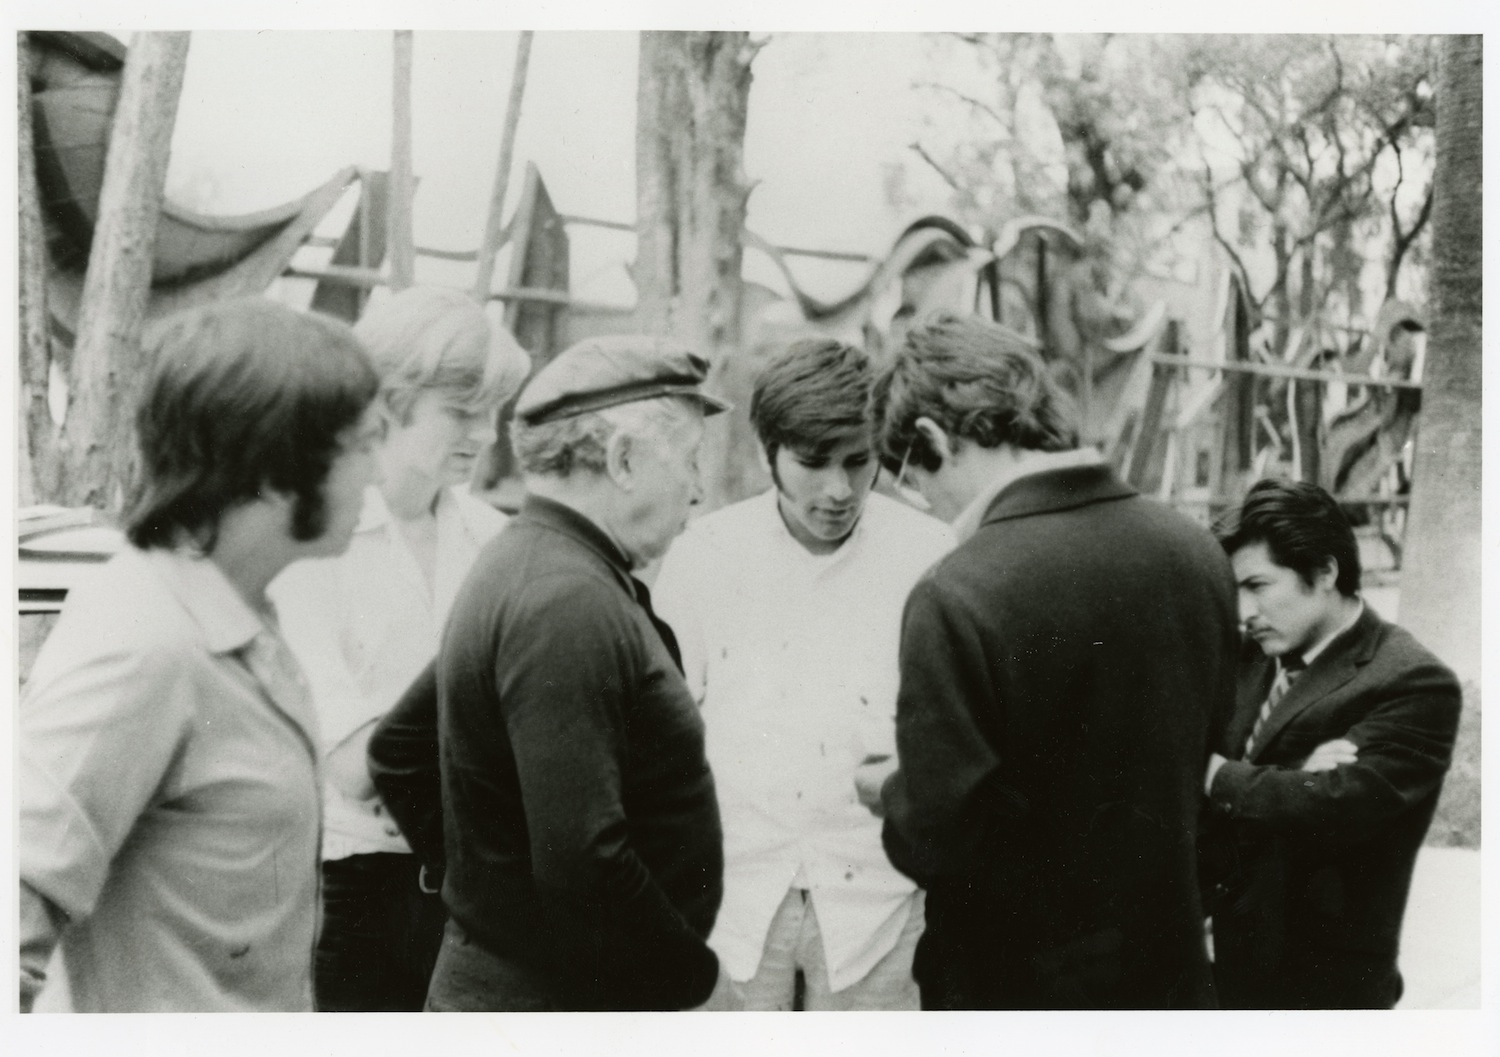 Robert Storr with Siquieros at the Polyforum in Mexico City, 1971 Photograph courtesy of Robert Storr, 2013